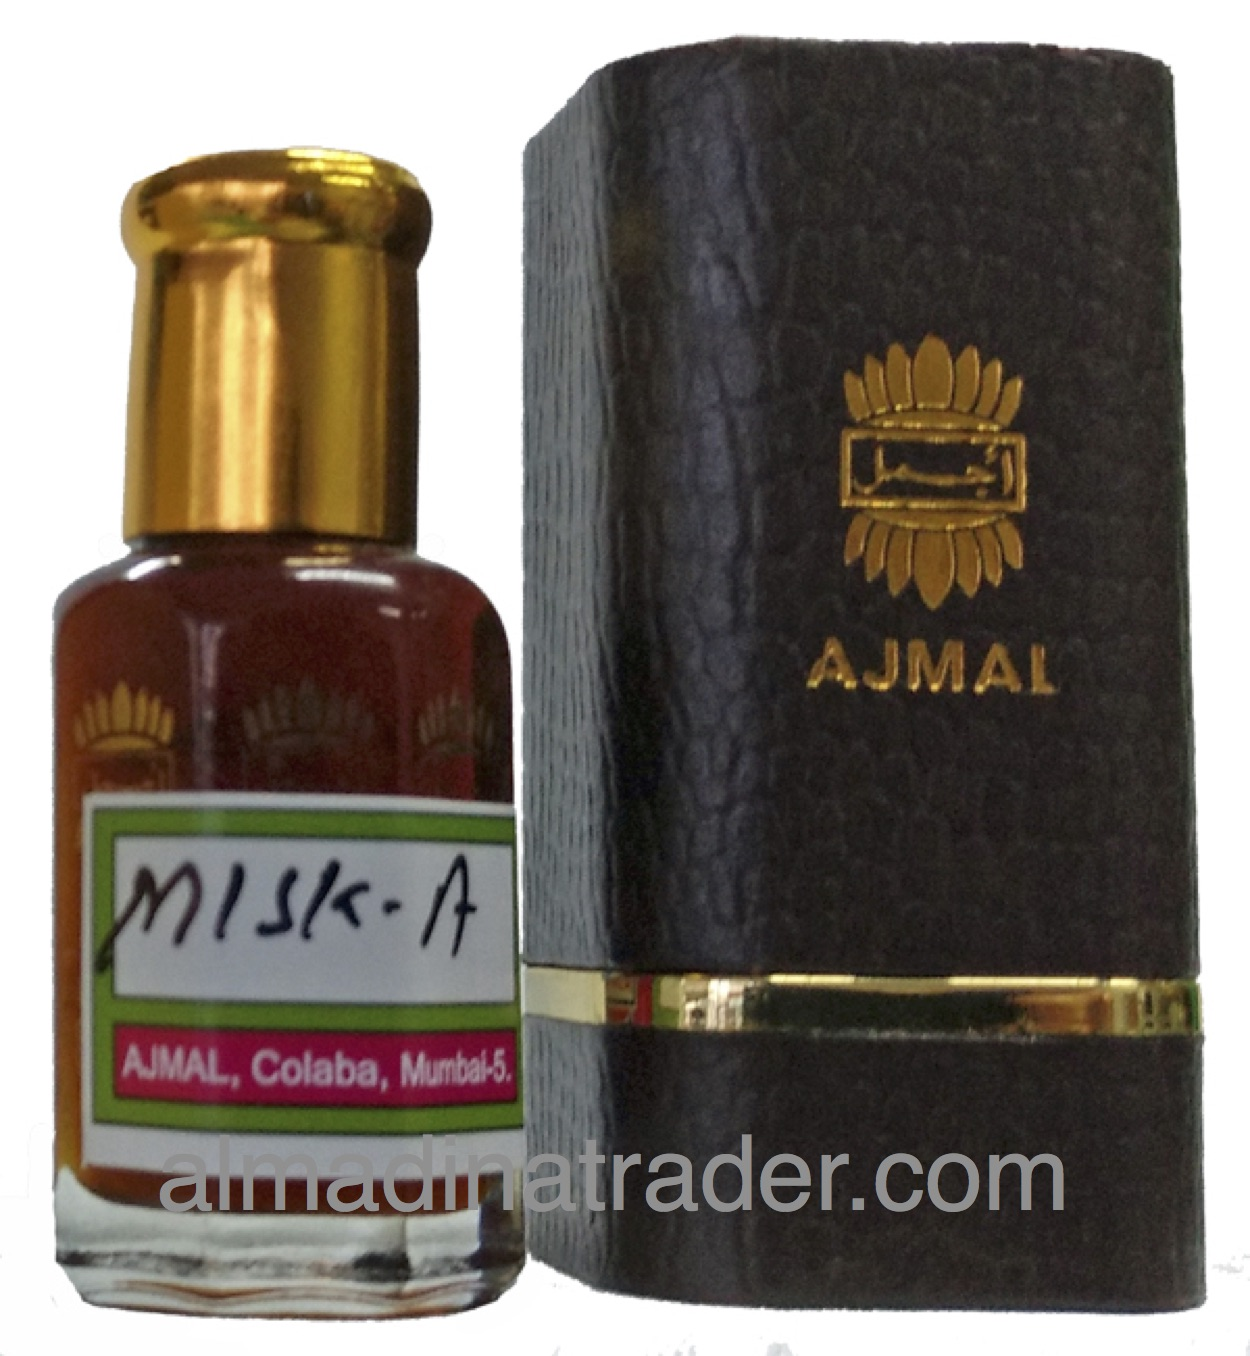 Black Misk Perfume Oil 12ml by Ajmal